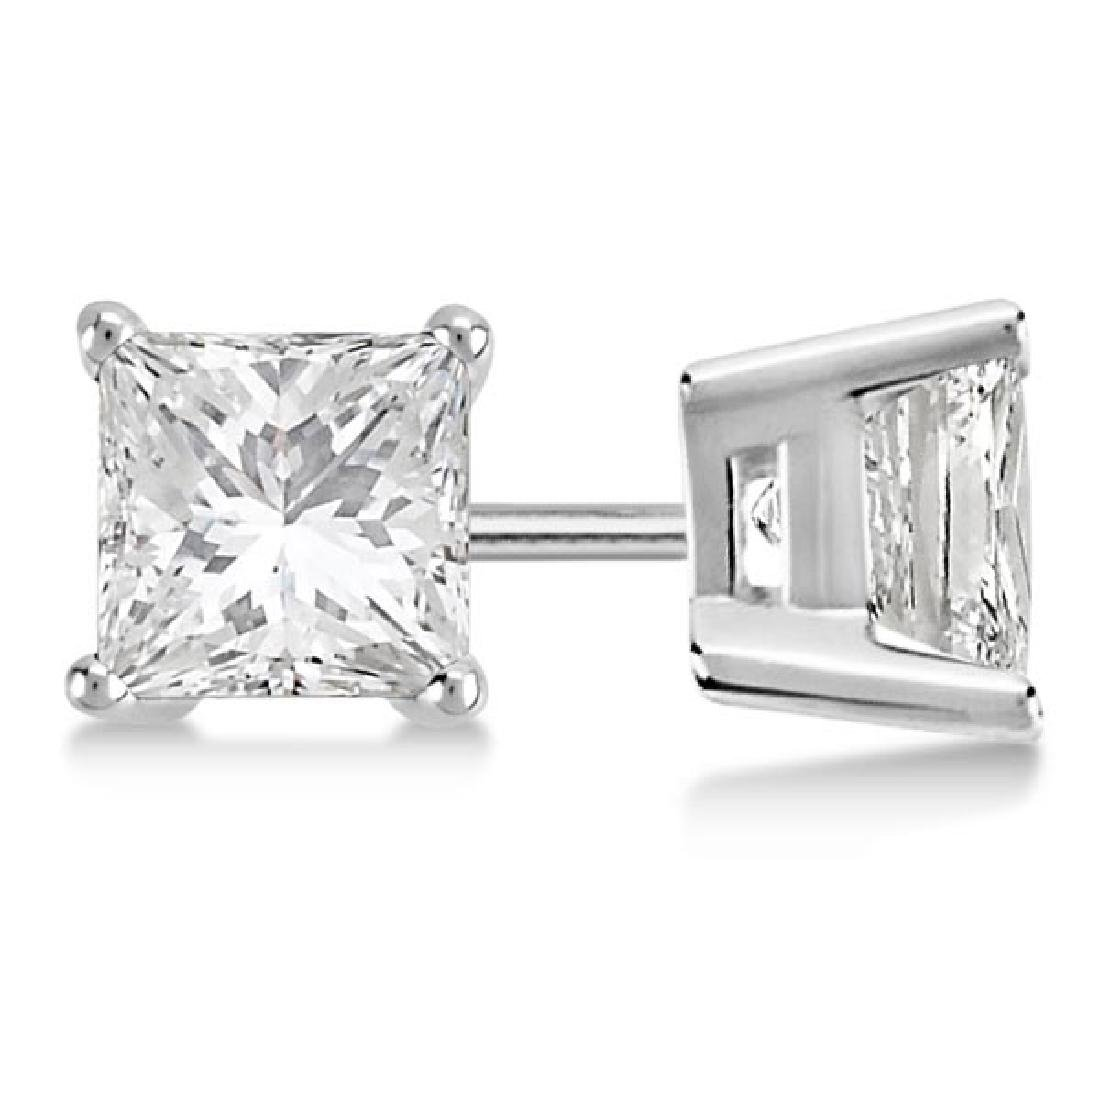 Certified 1.05 CTW Princess Diamond Stud Earrings E/SI1